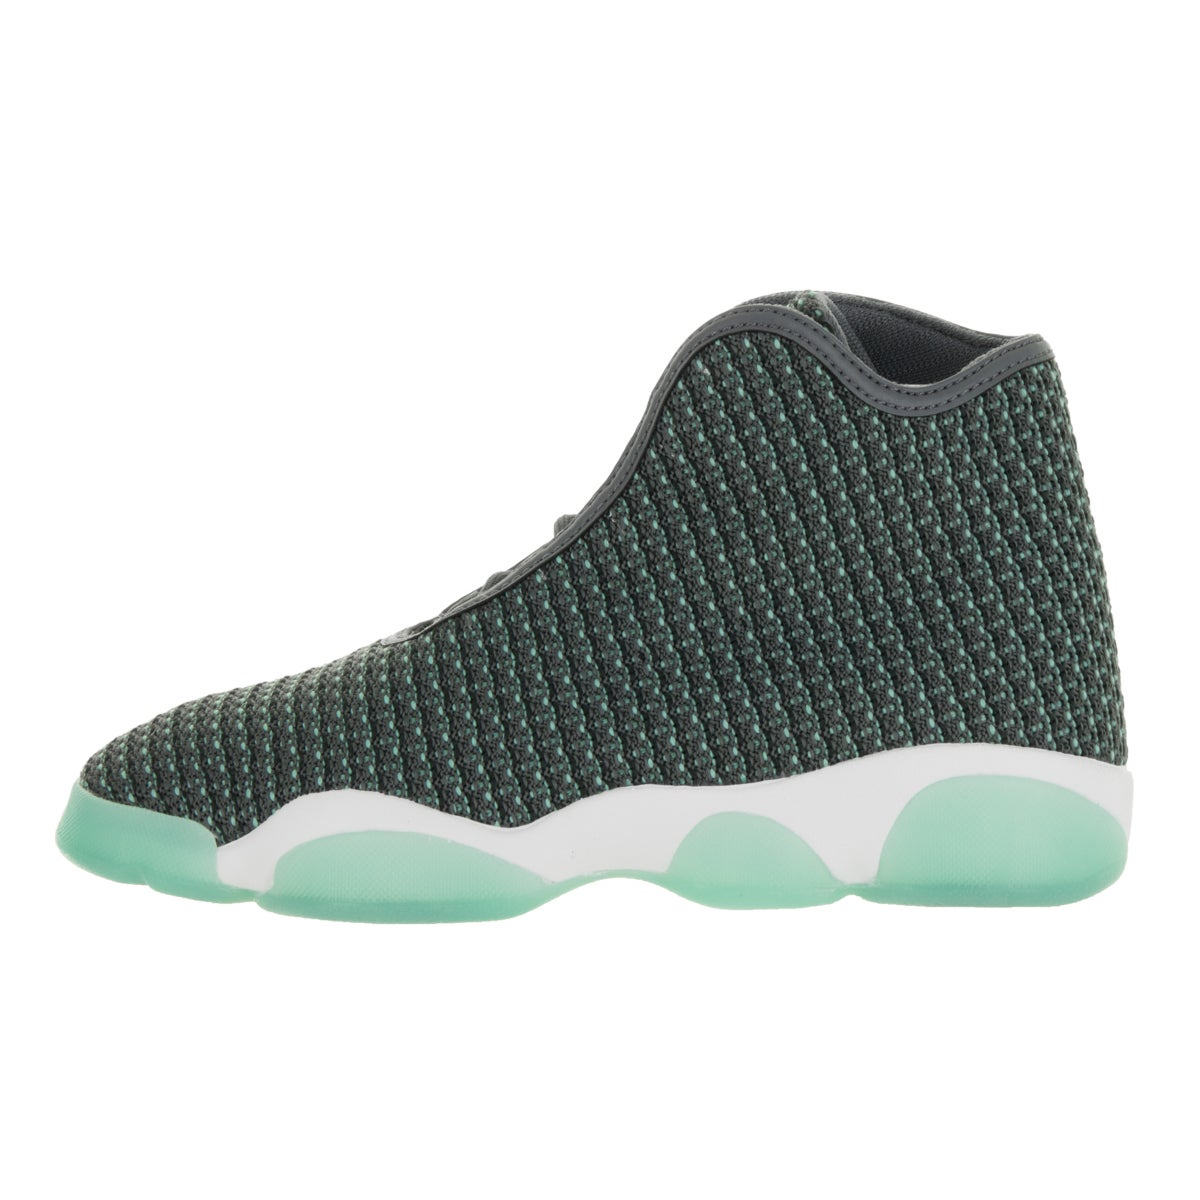 a5c51e13bb0a ... canada nike jordan kids jordan horizon bg dark grey white and turquoise  textile basketball shoes free